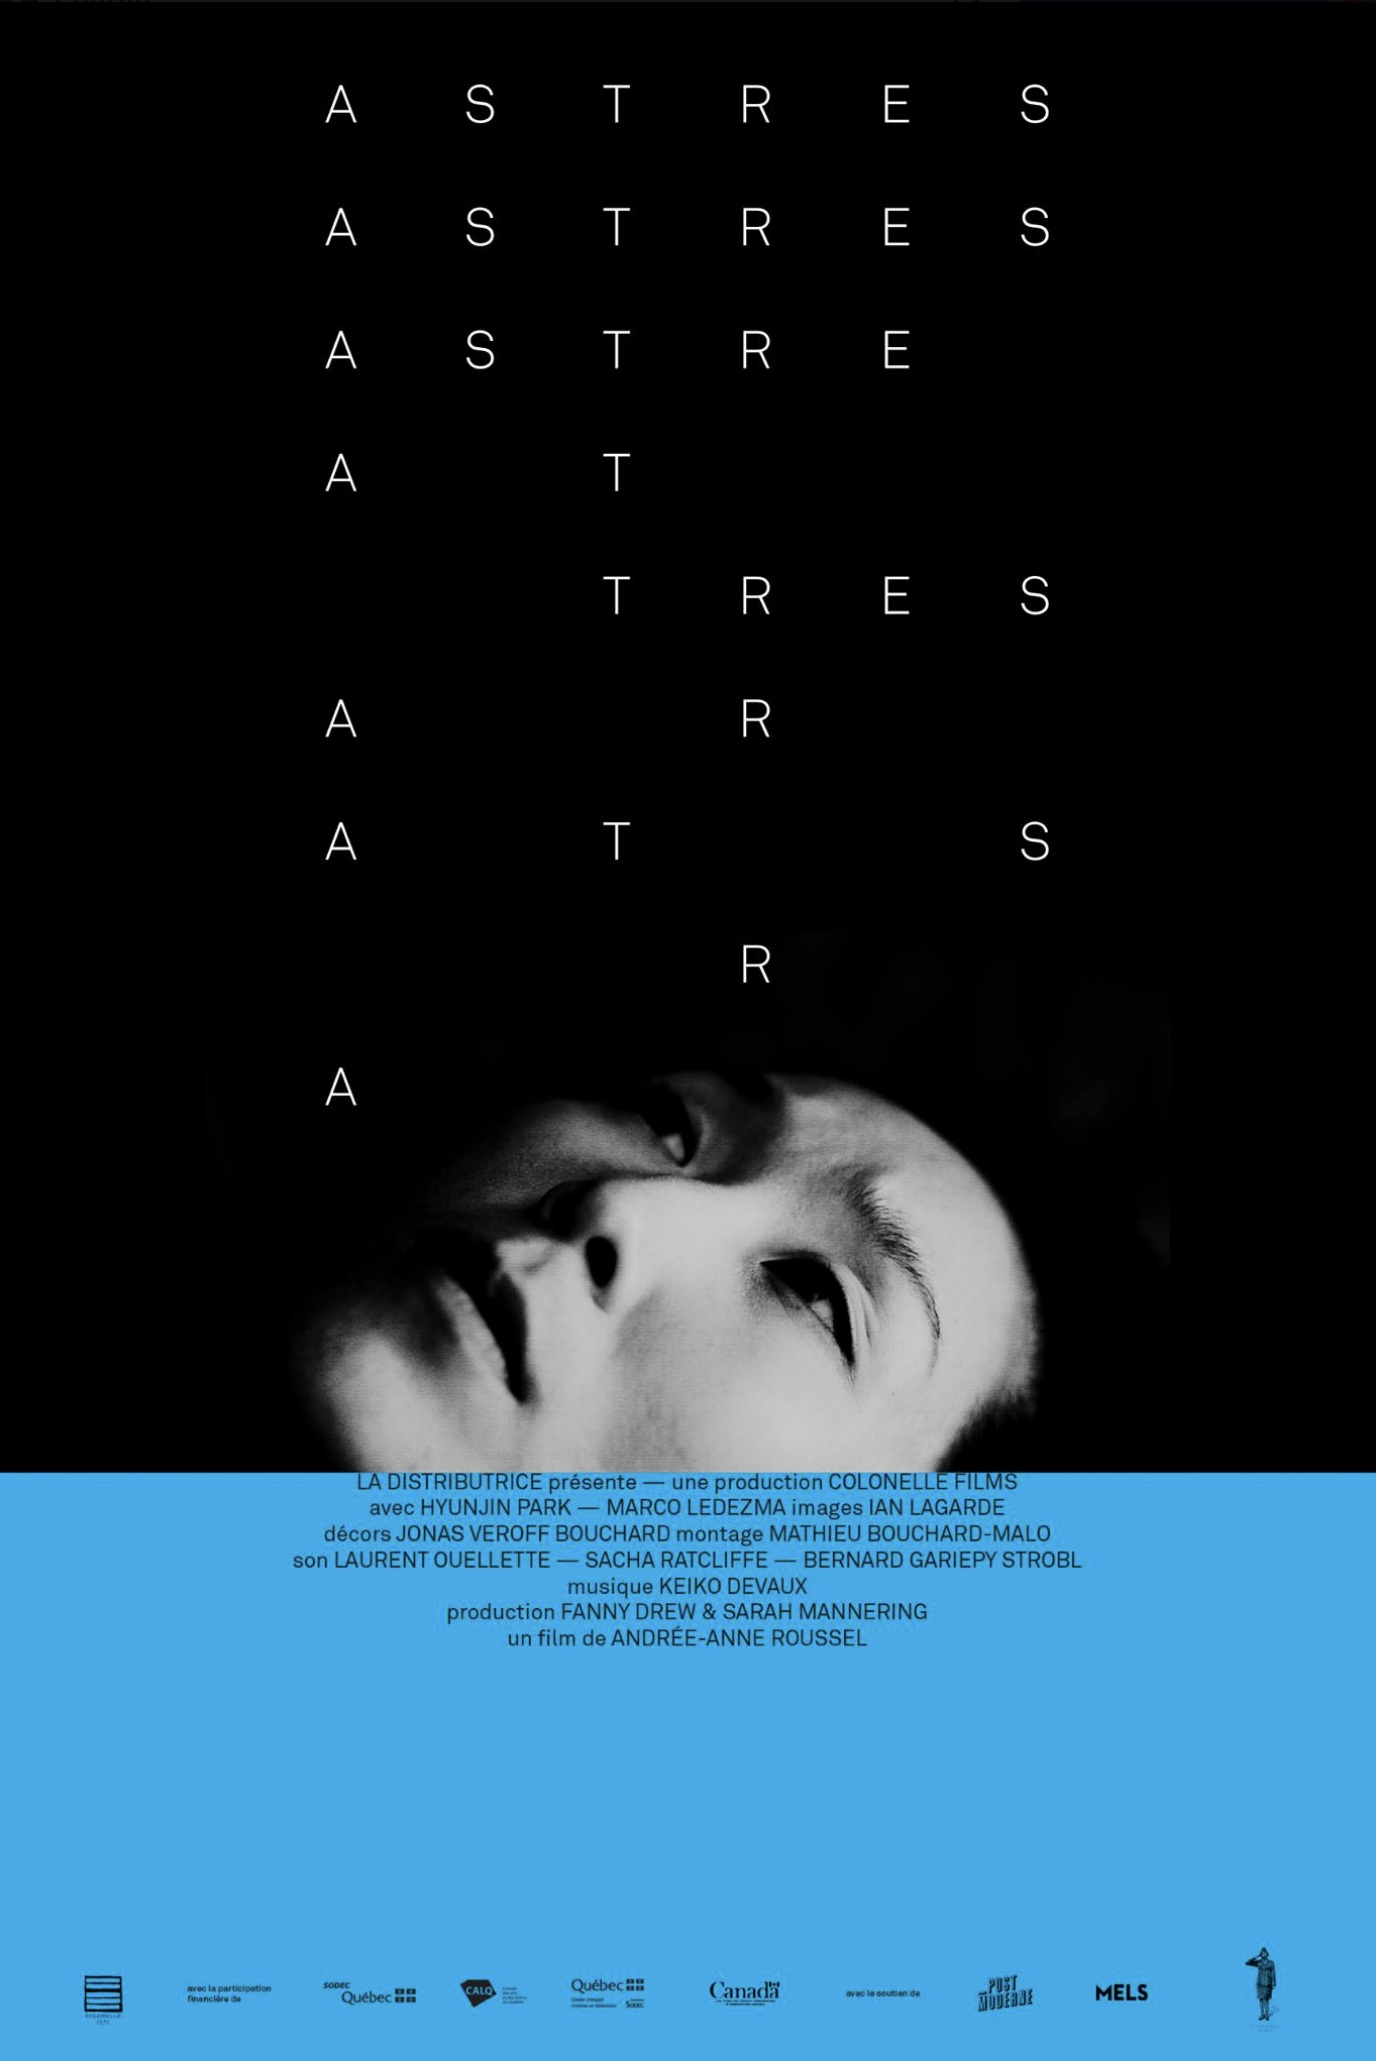 ASTRES - 2019 | 18m | Live Action Drama ShortA young woman grieves the death of her sister, and makes a cosmic discovery.Directed by Andrée-Anne Roussel.Produced by Colonelle Films.